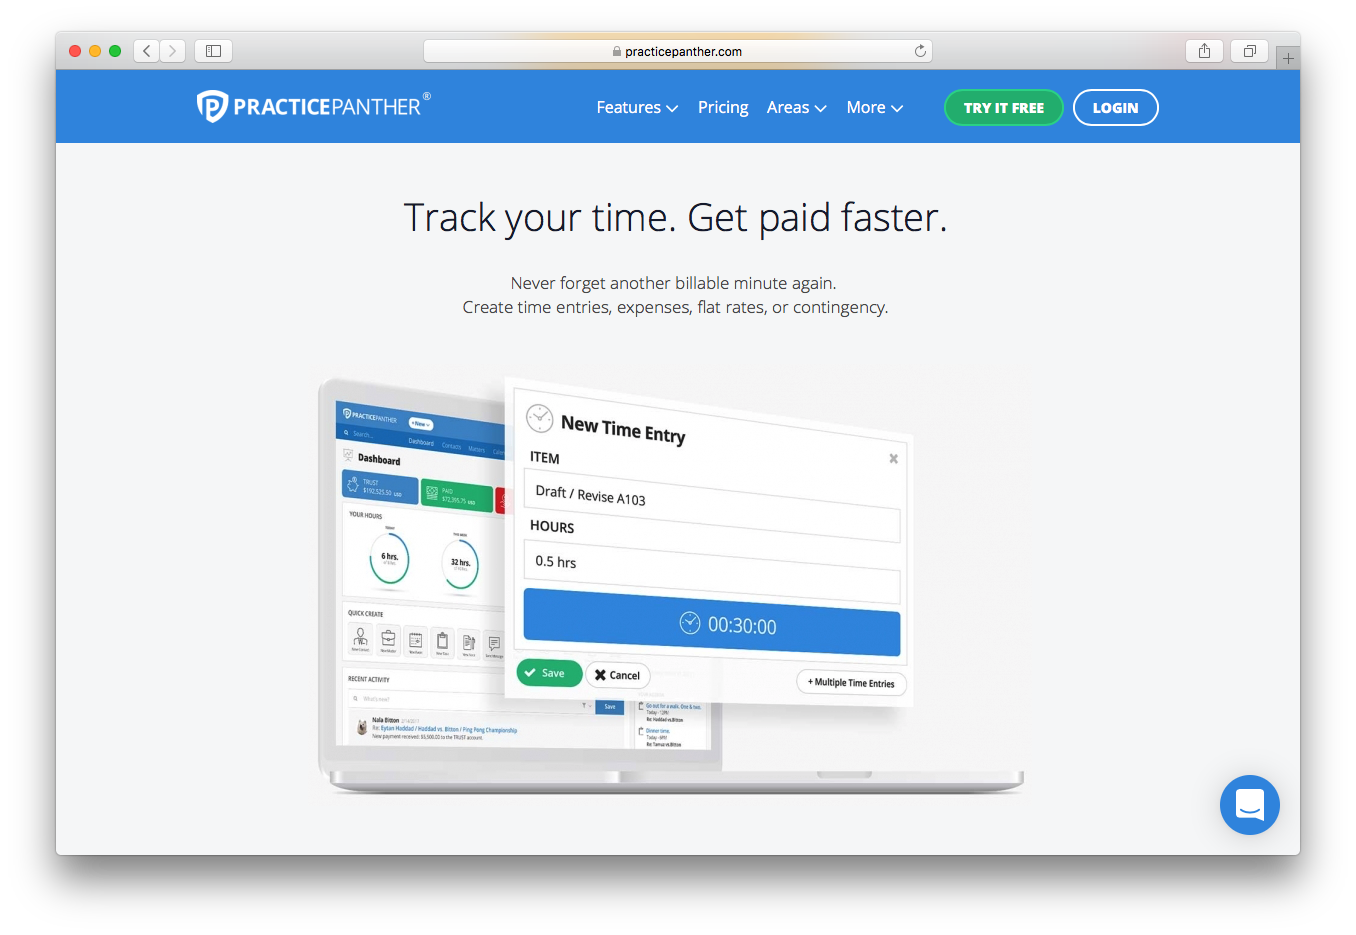 PracticePanther track time get paid faster billable minute time entries expenses flat rates contingency